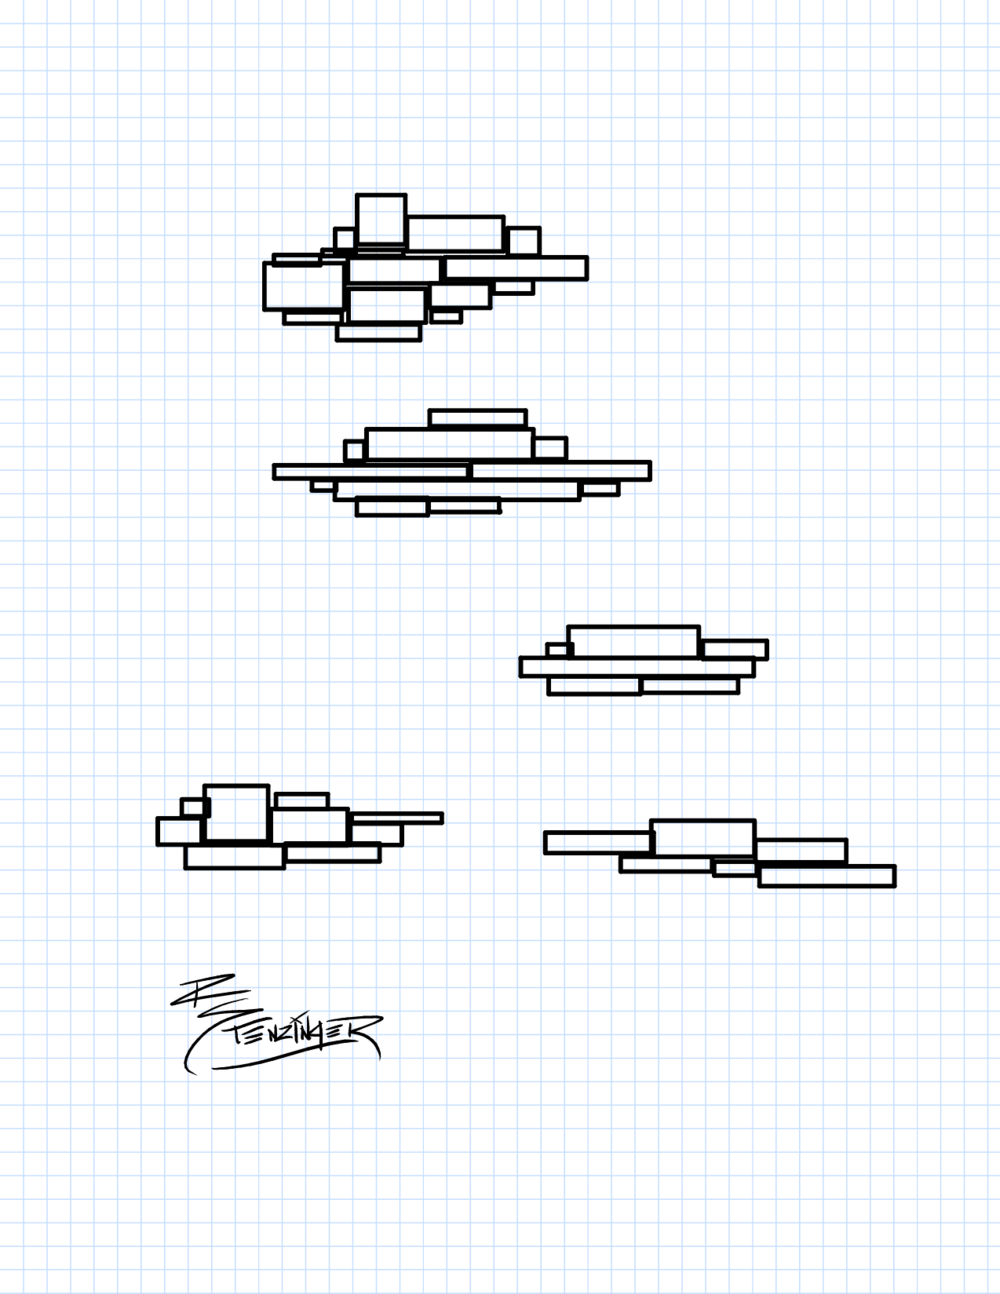 An attempt at clouds, though they more closely resemble battleships or extra simplified 8-bit art.